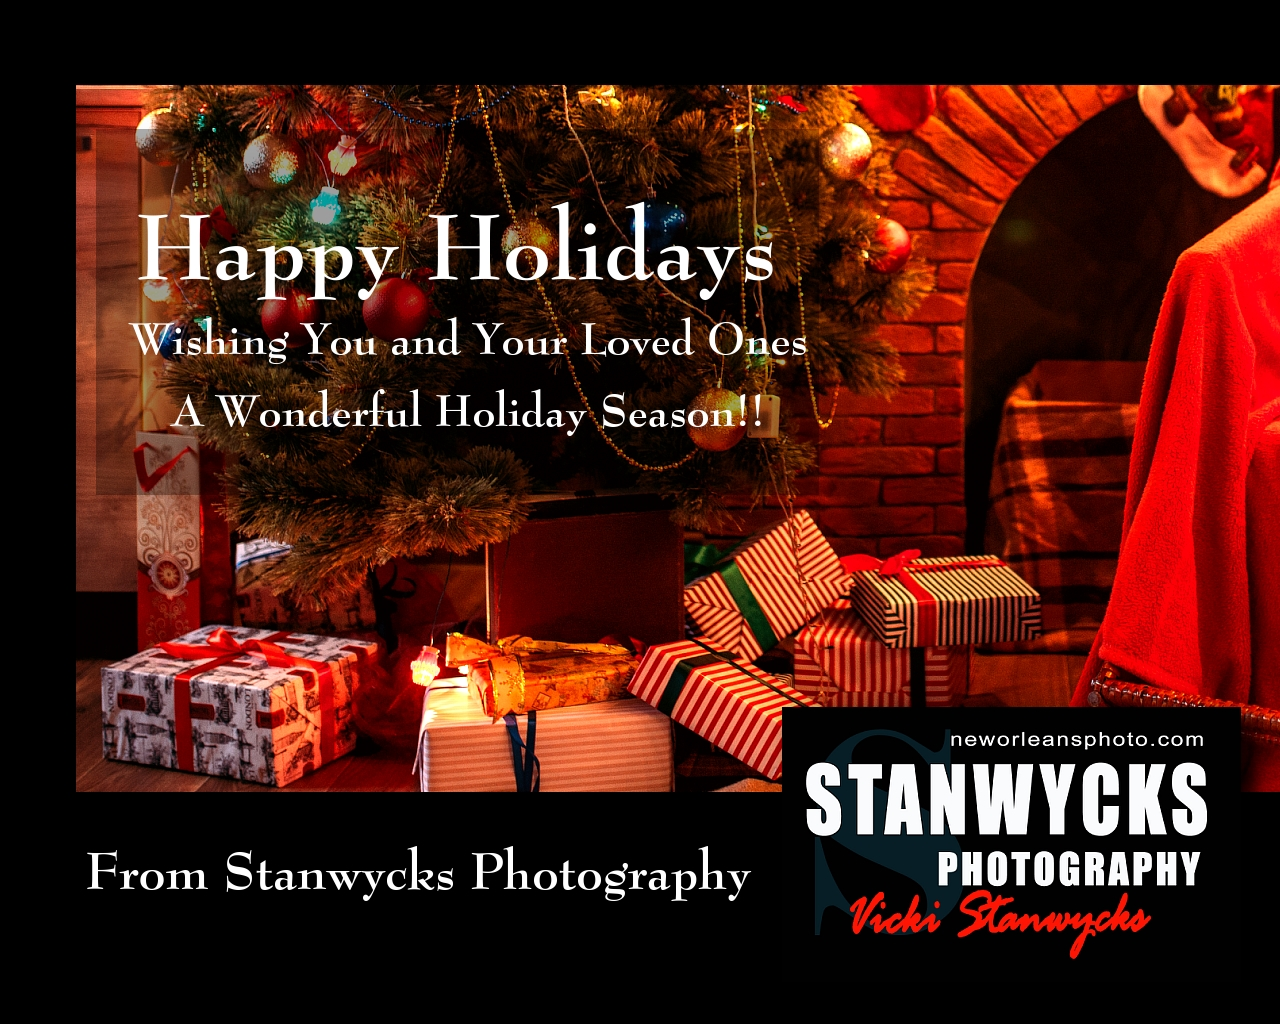 Holiday Web Pages 006 (Sheet 6)